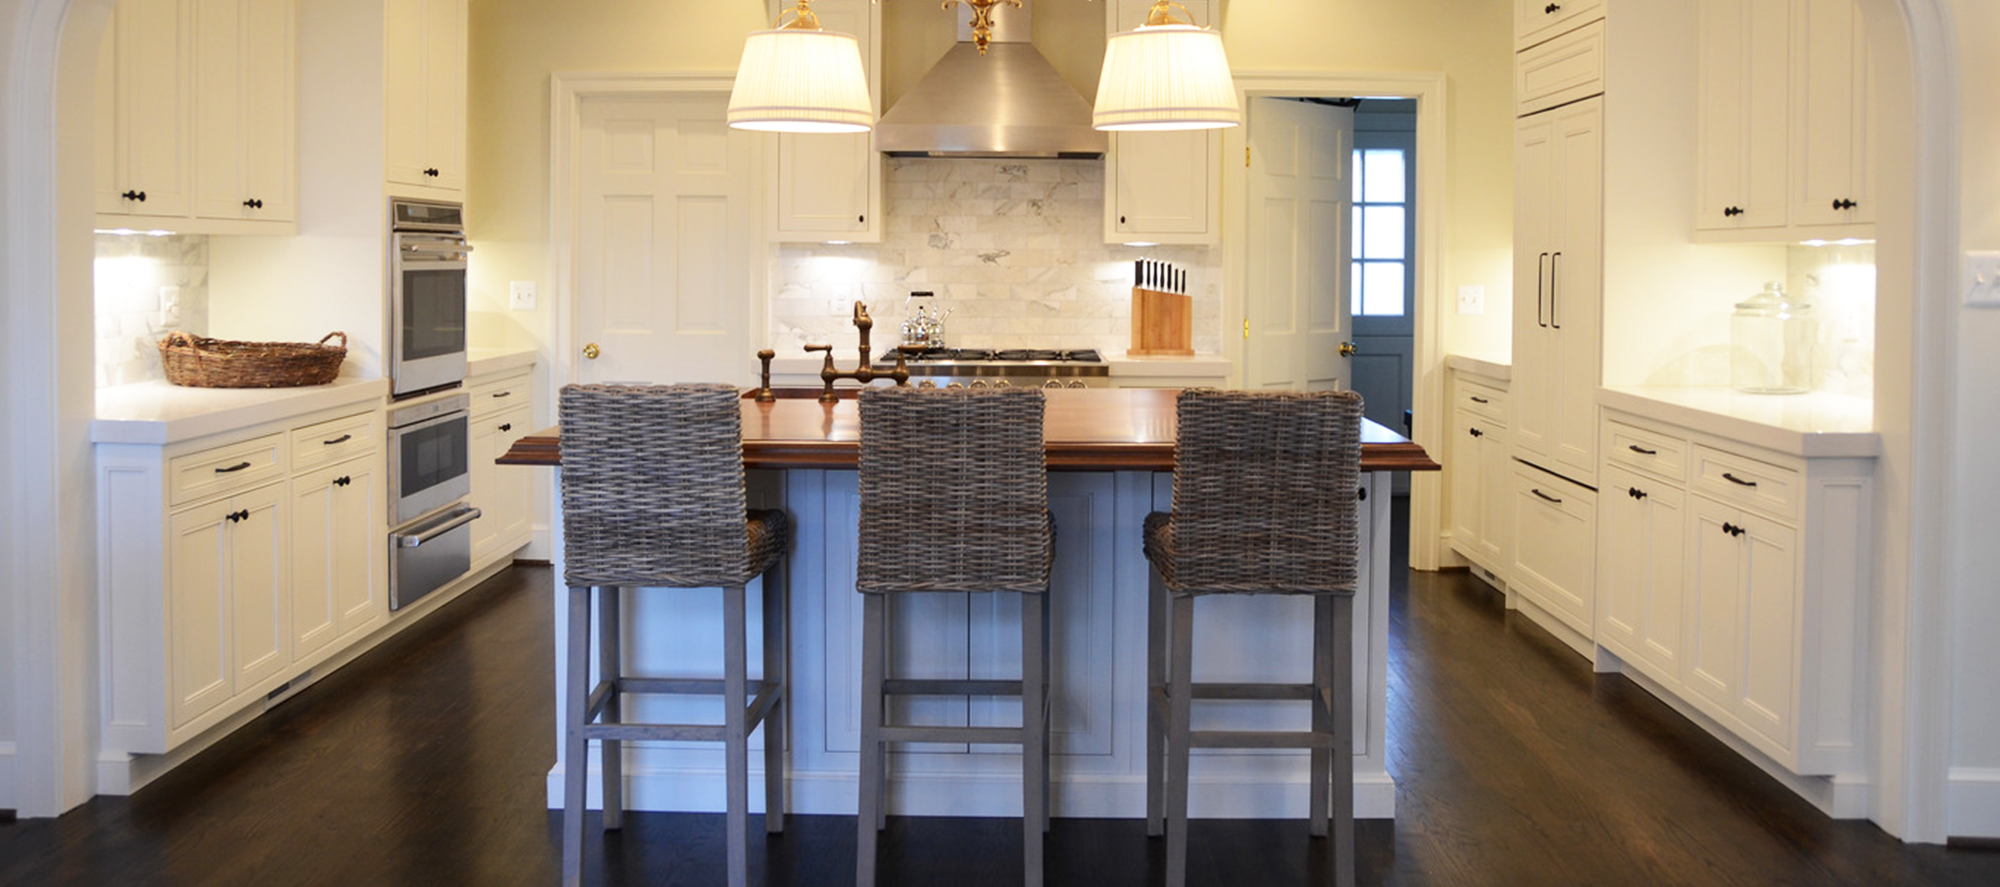 Kitchen Remodeling Services in Virginia